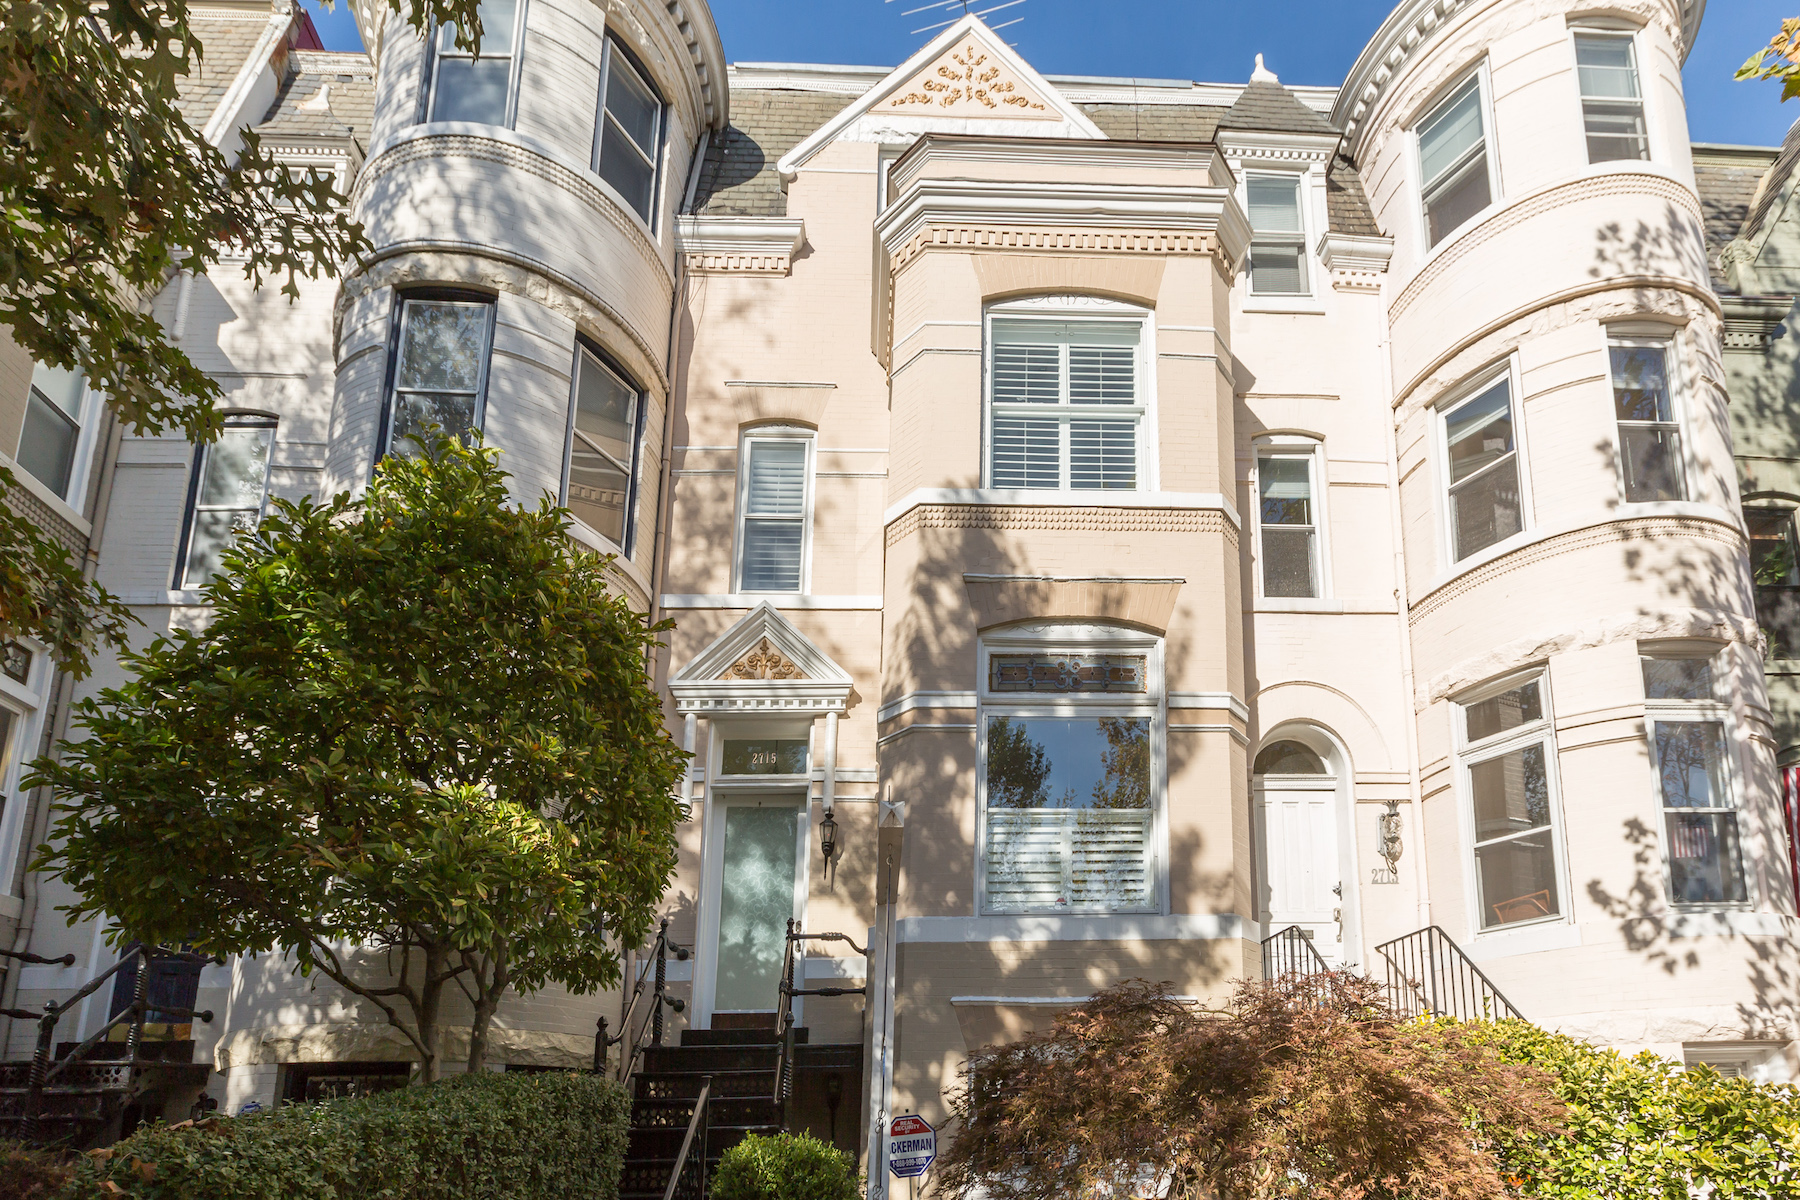 Townhouse for Sale at 2715 P Street Nw, Washington Georgetown, Washington, District Of Columbia, 20007 United States